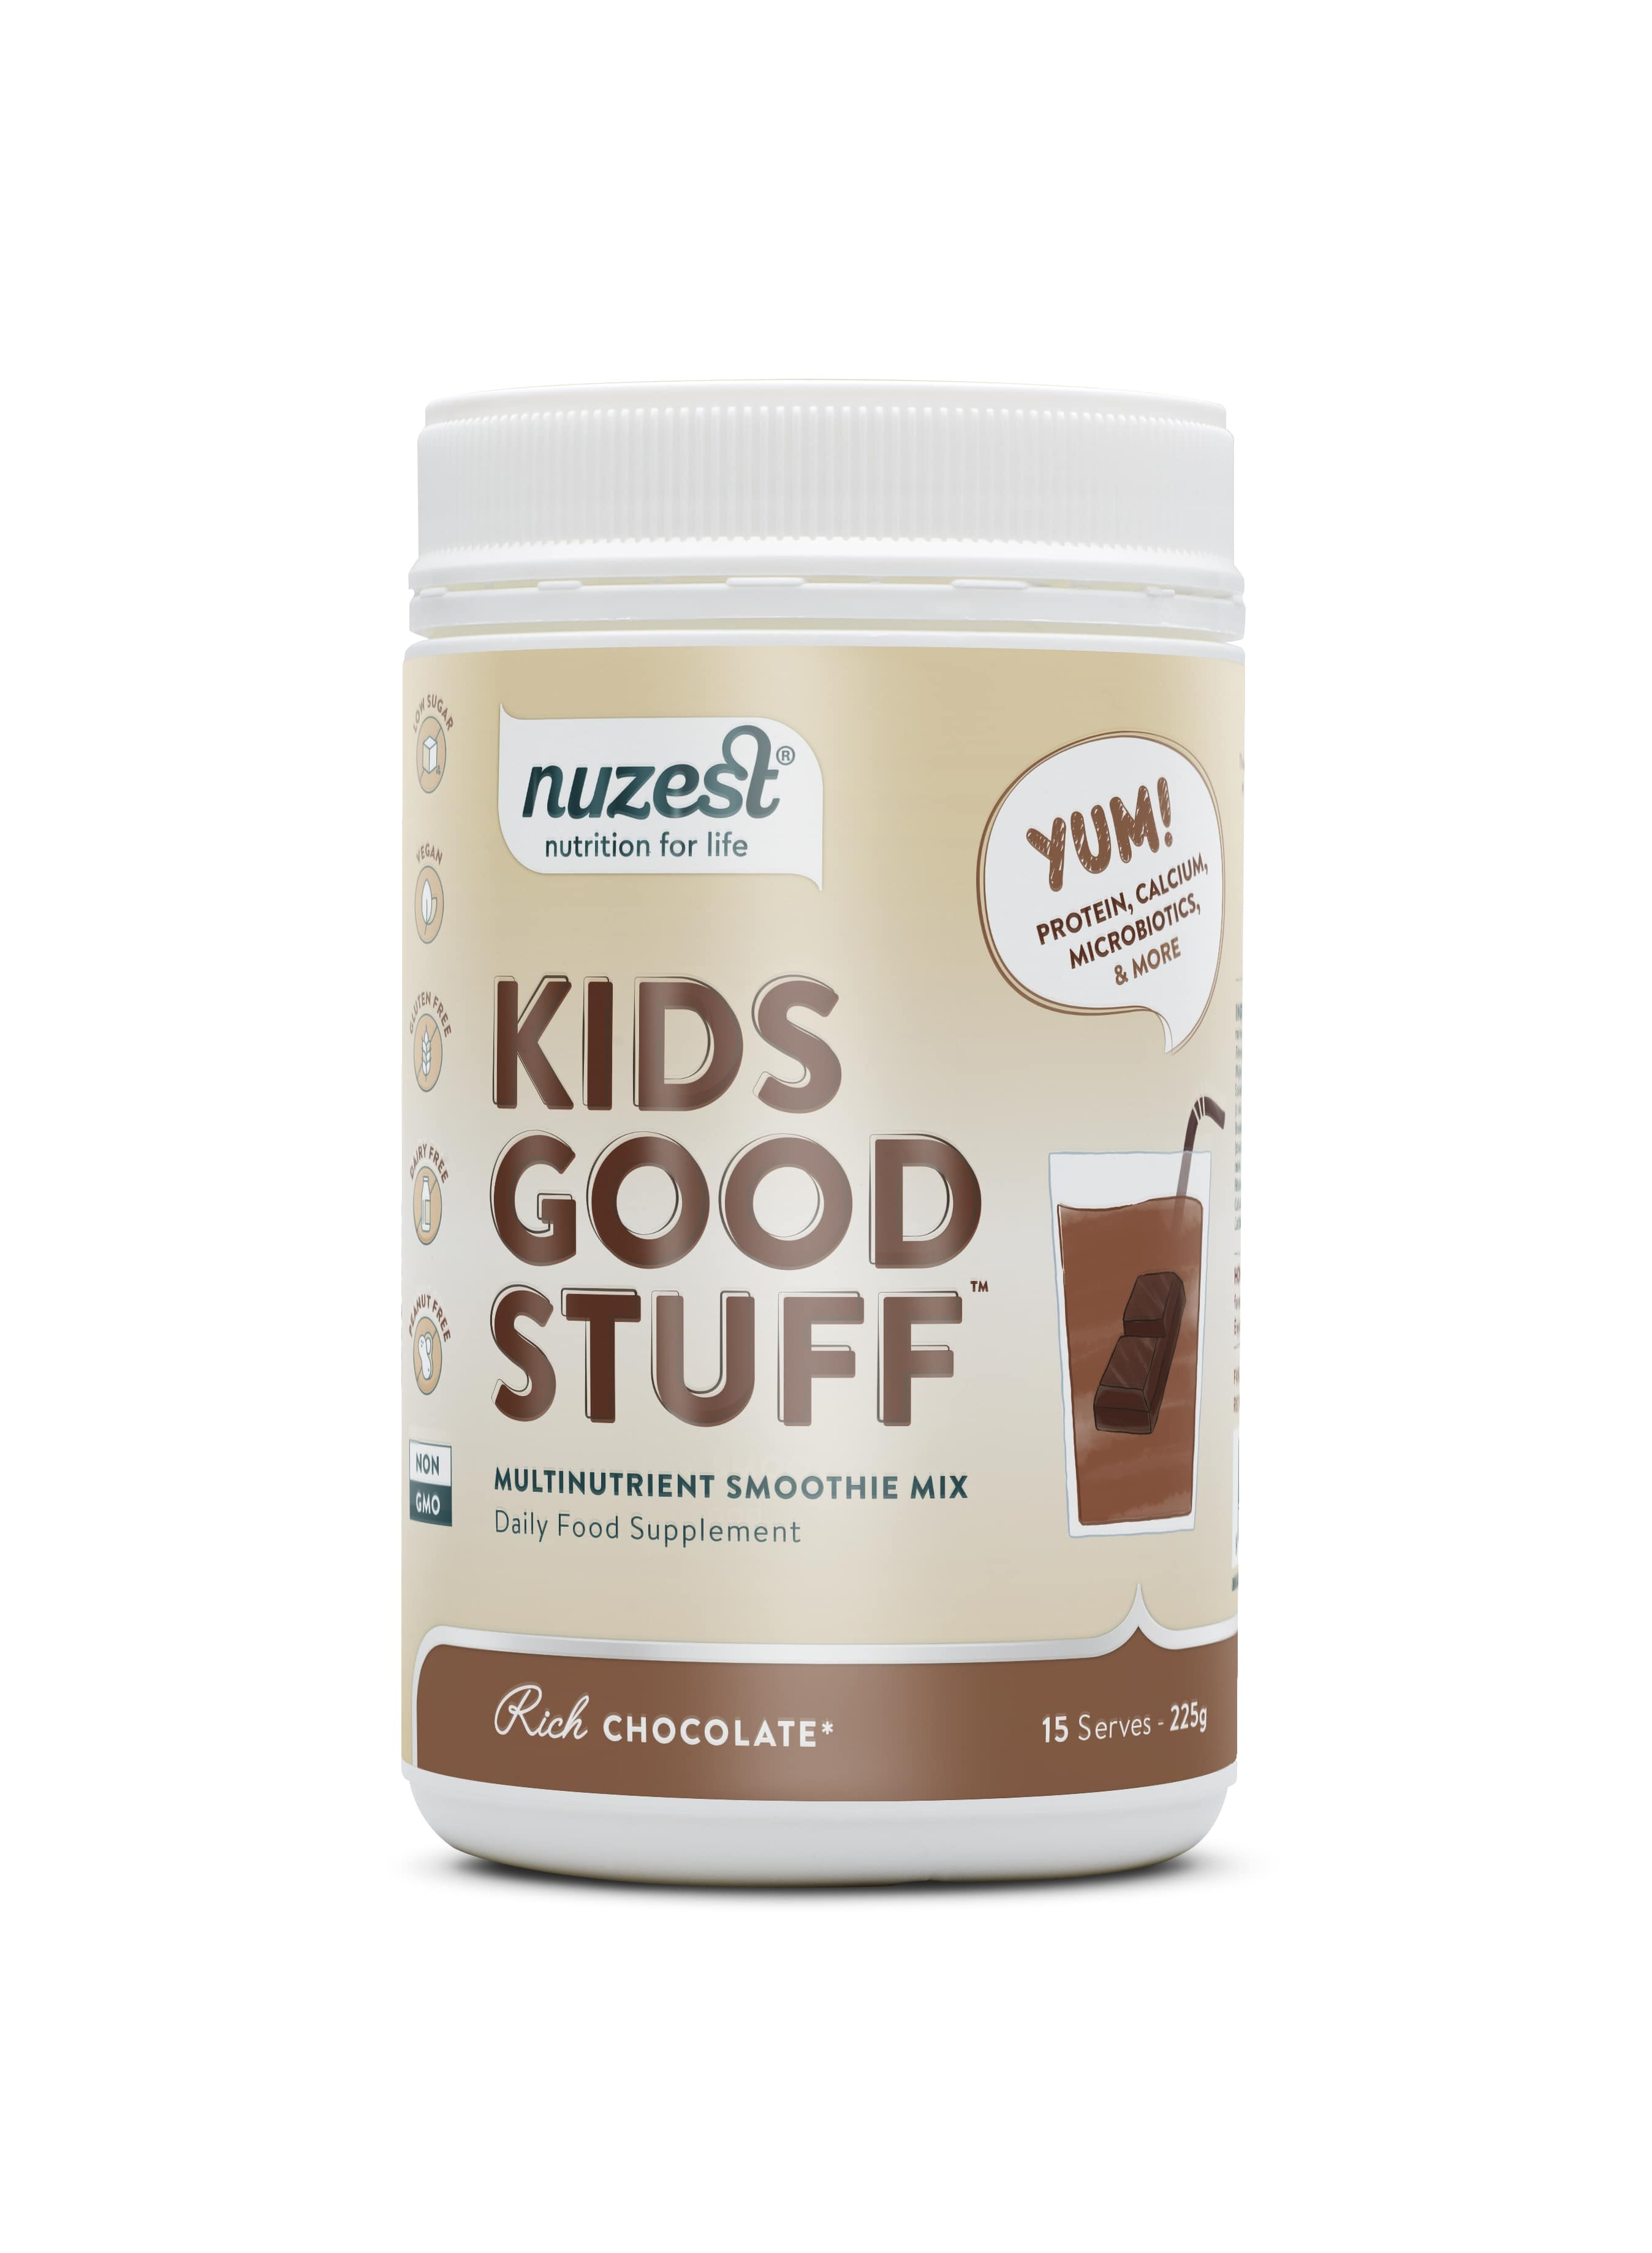 Nuzest - Kids Good Stuff, Rich Chocolate Balenie: 225g